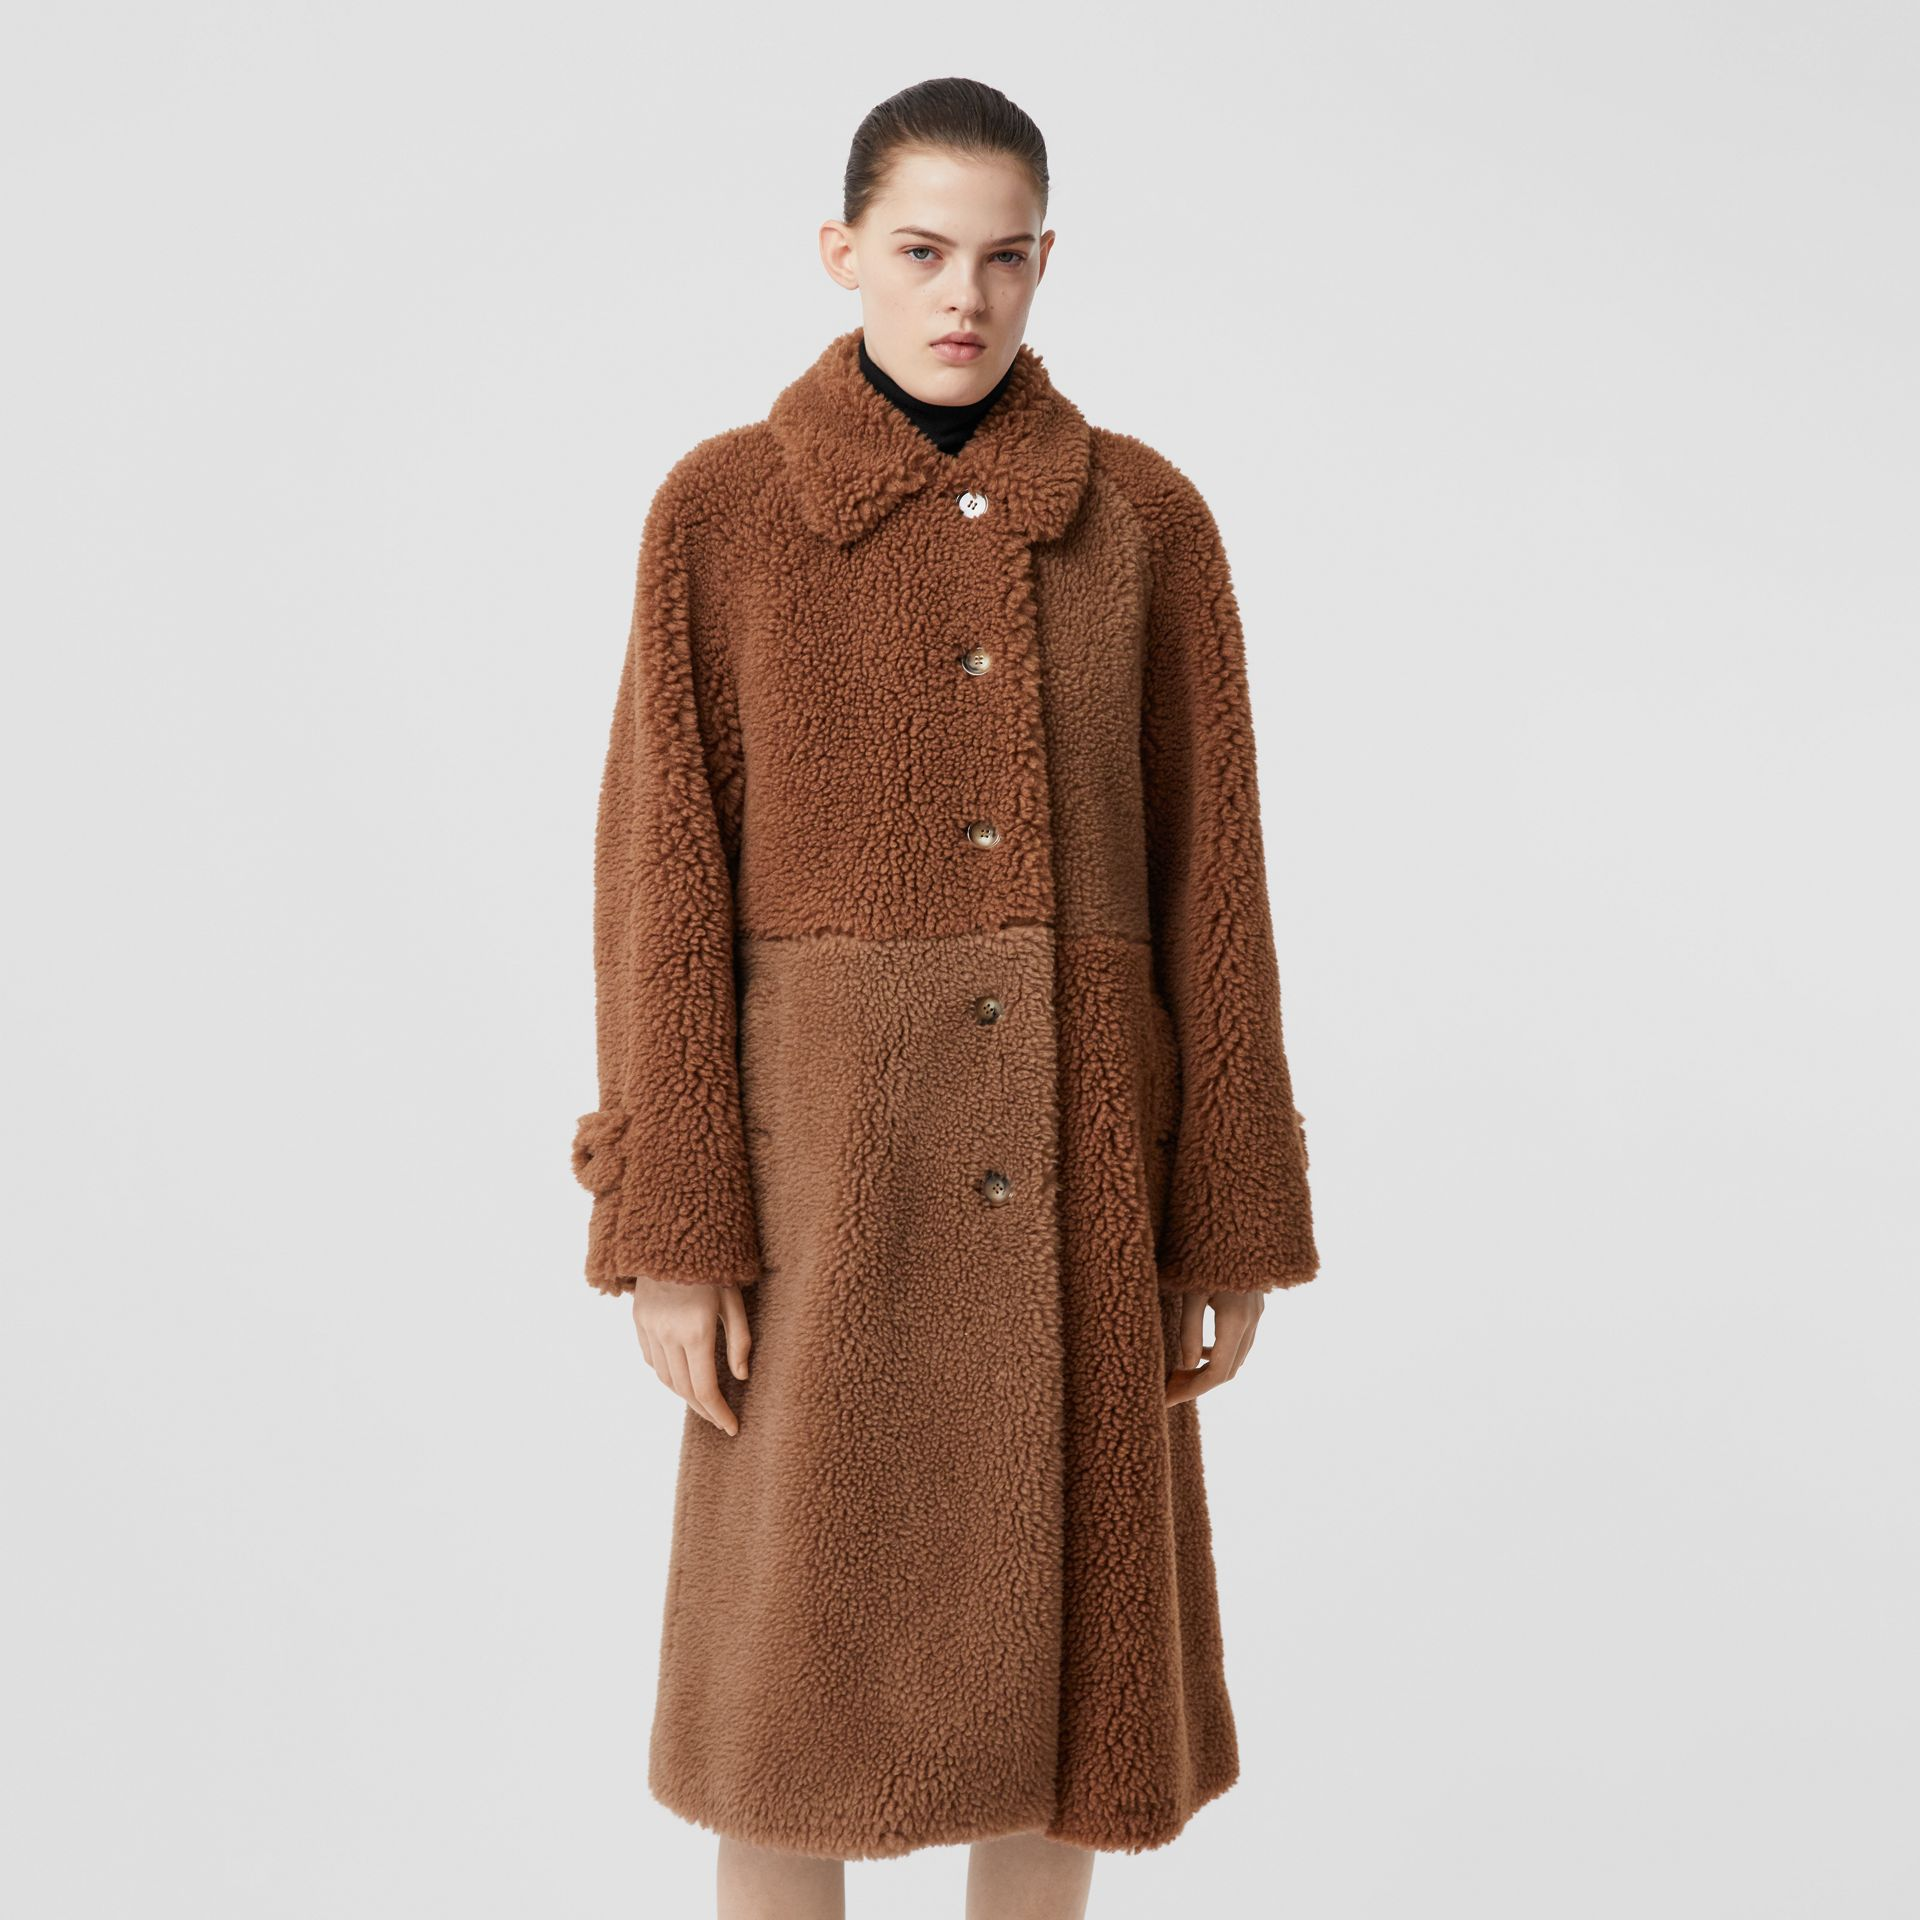 Faux Shearling and Camel Hair Blend Coat in Brown - Women | Burberry United Kingdom - gallery image 5